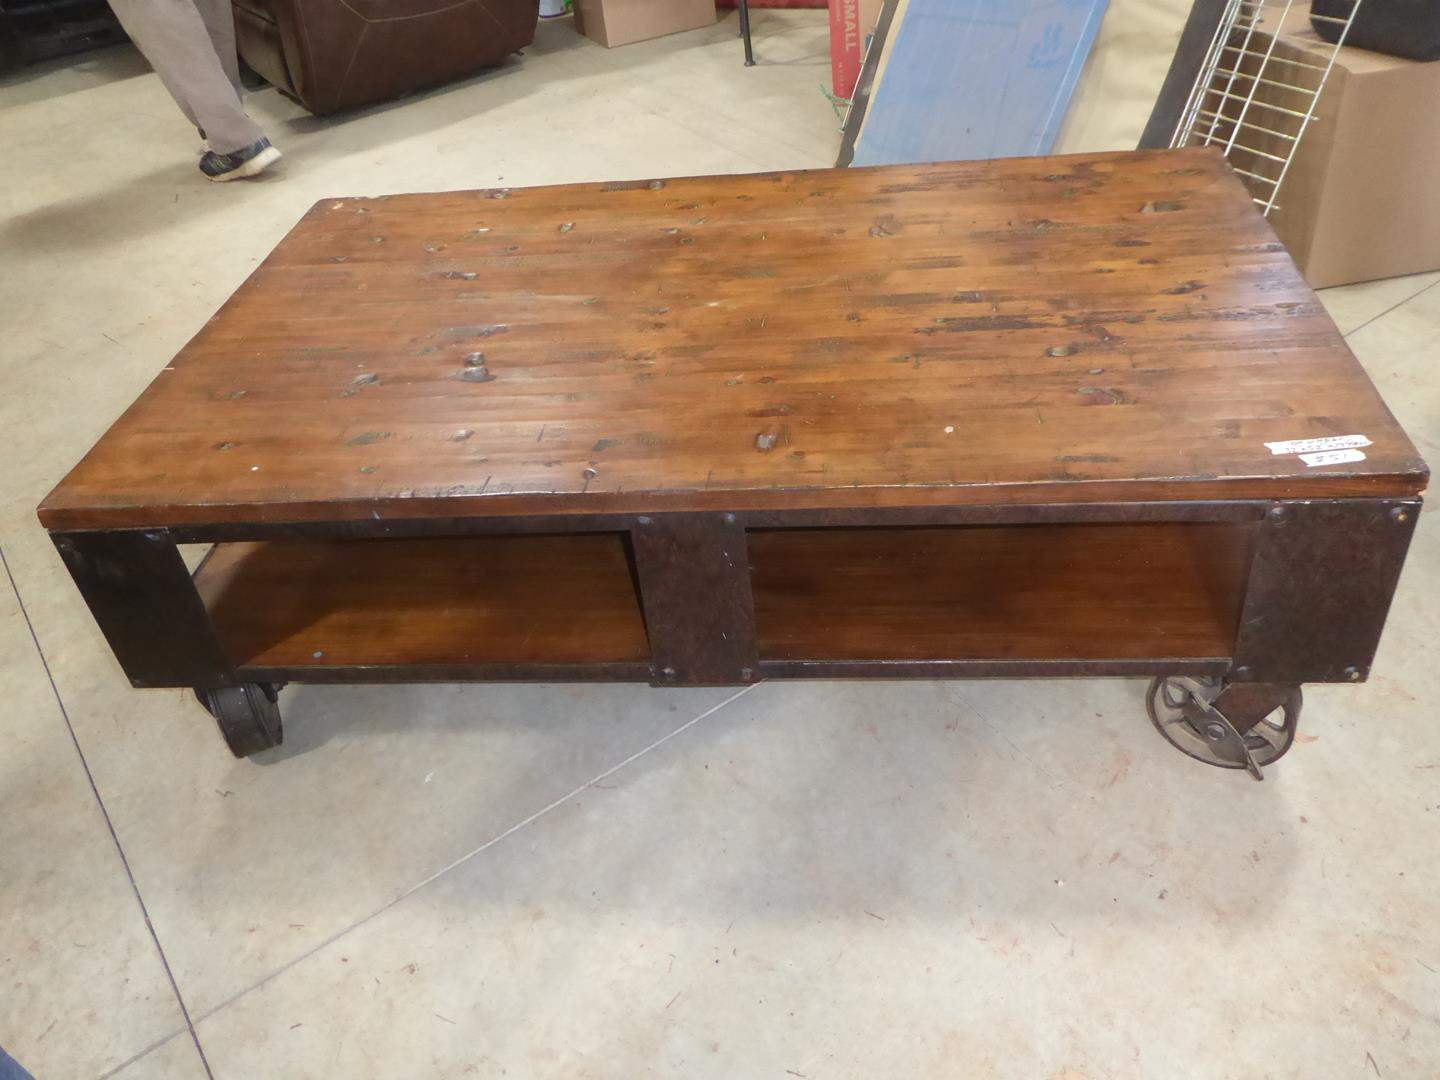 Lot # 51 - Industrial Rustic Solid Wood Coffee Table on Wheels (main image)